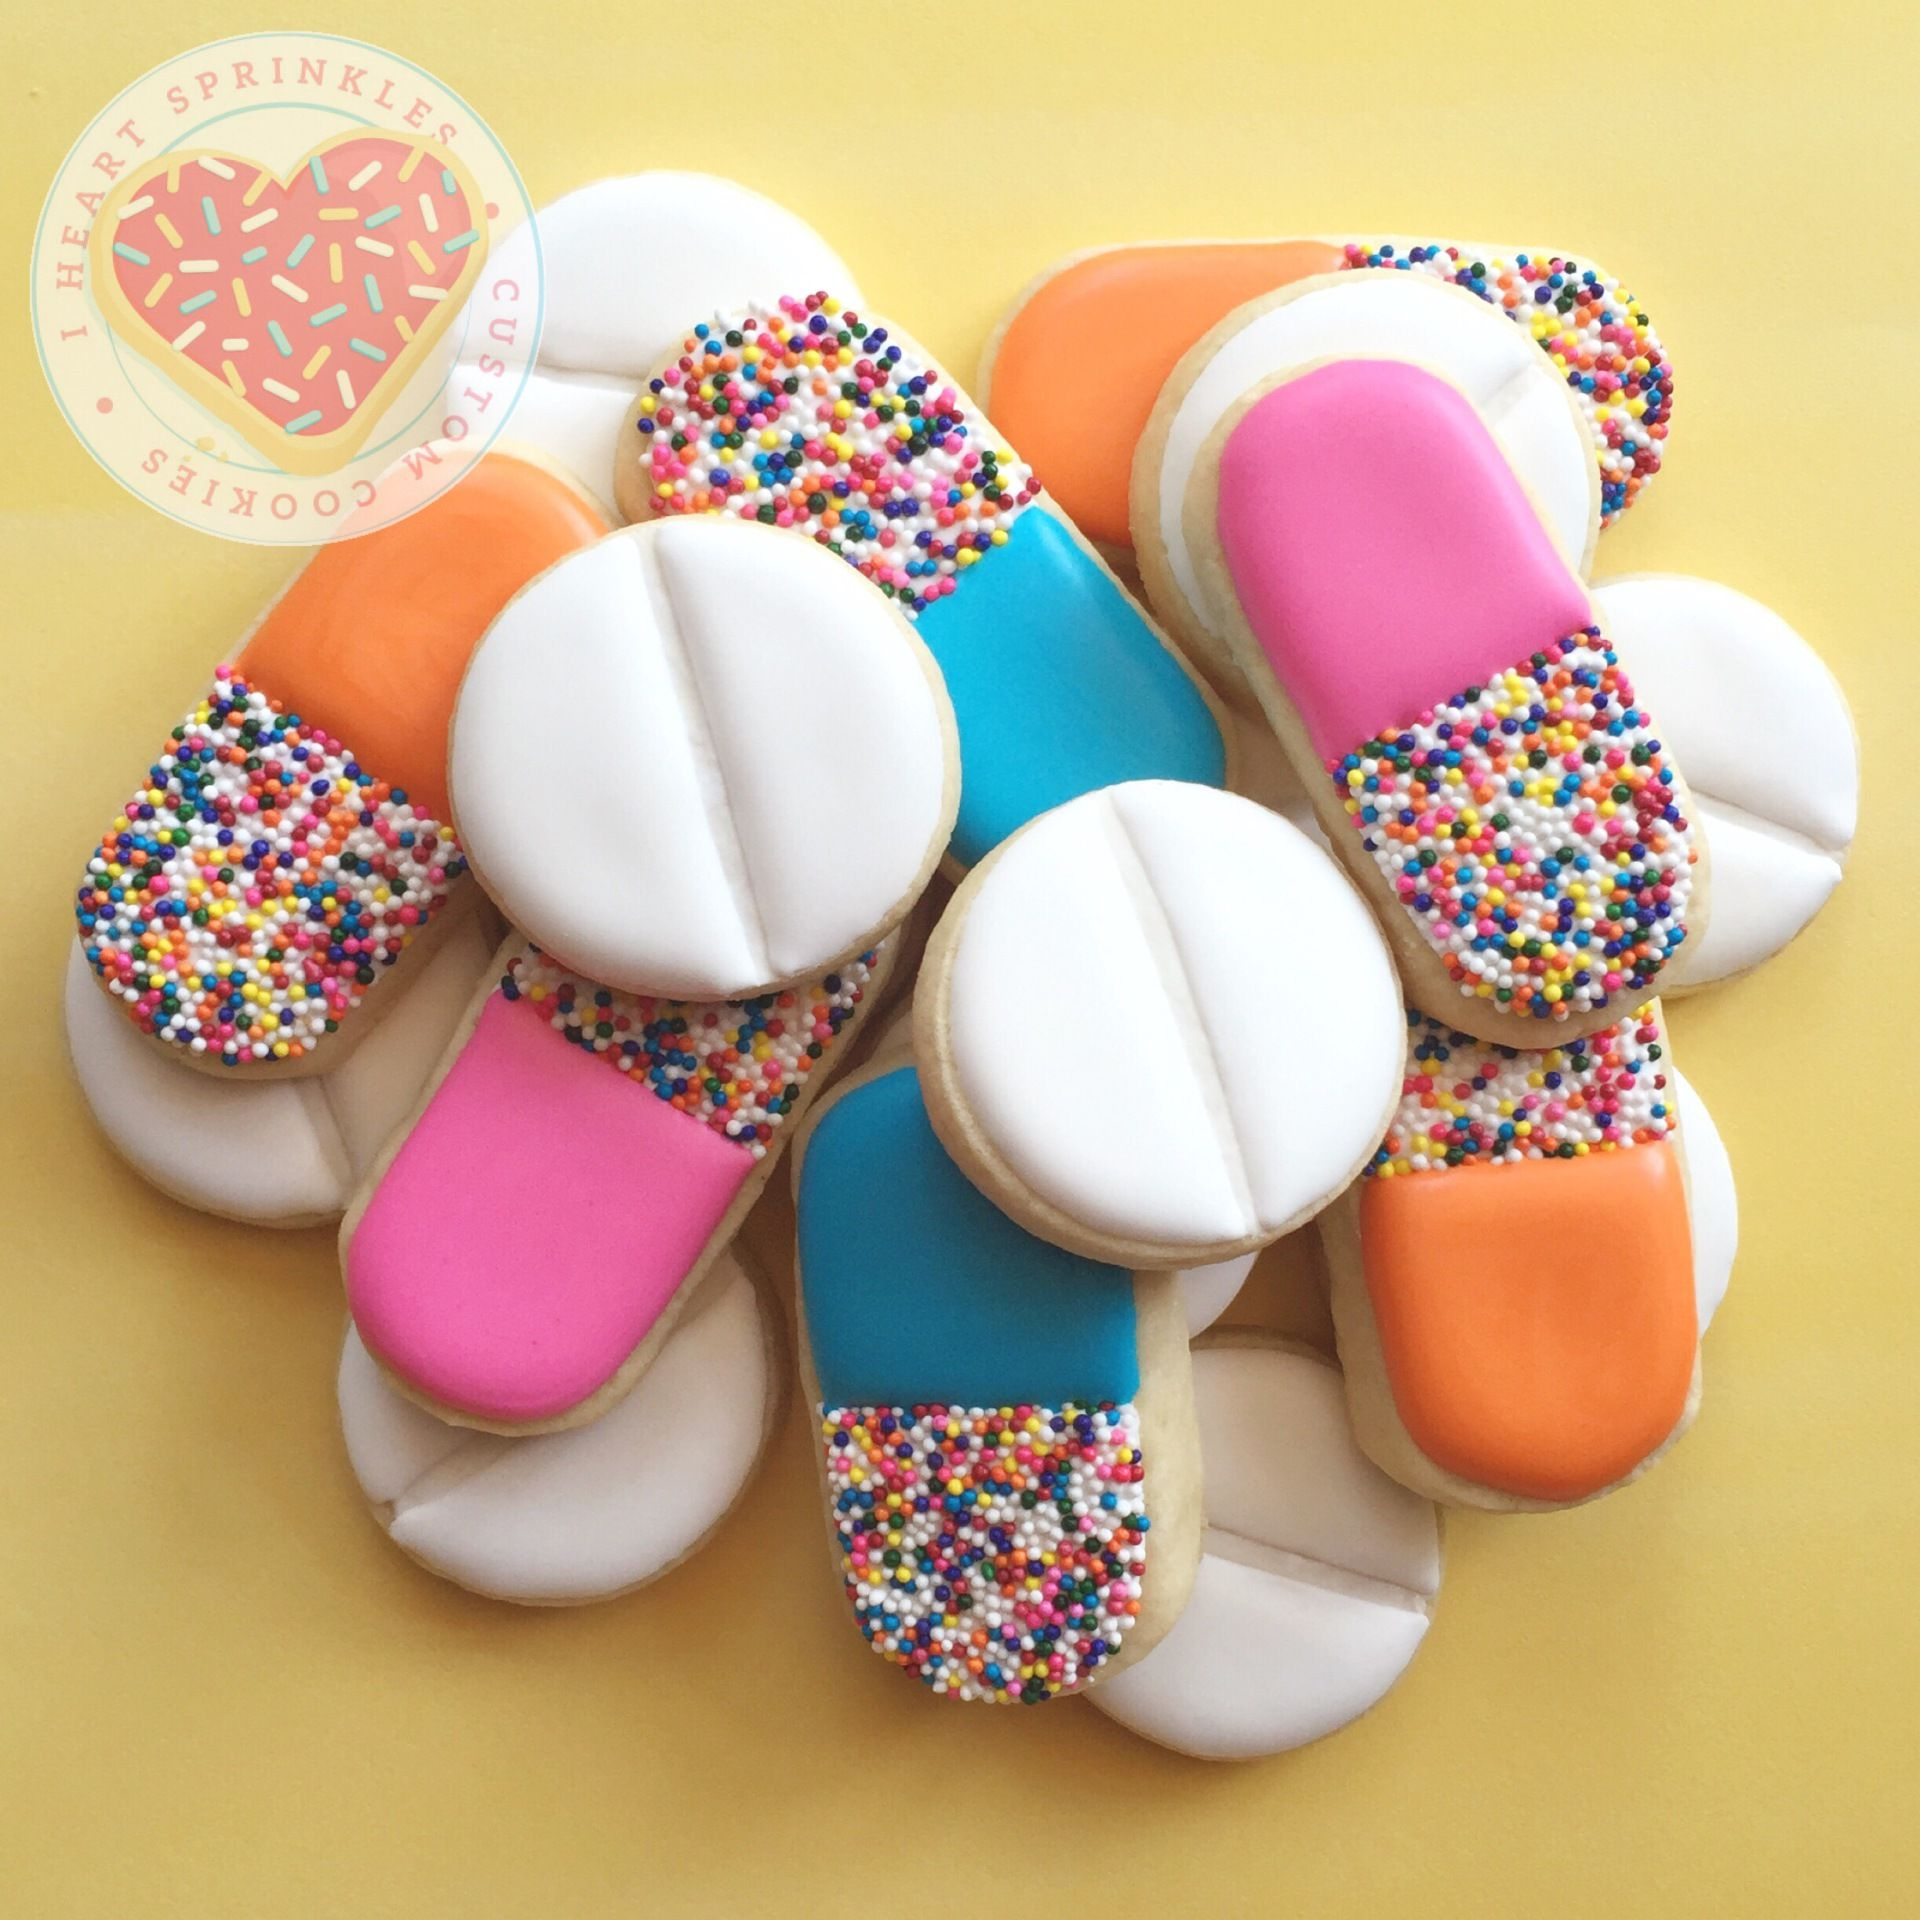 Medicine: Get Well Cookies: Just A Spoonful Of Sugar Helps The